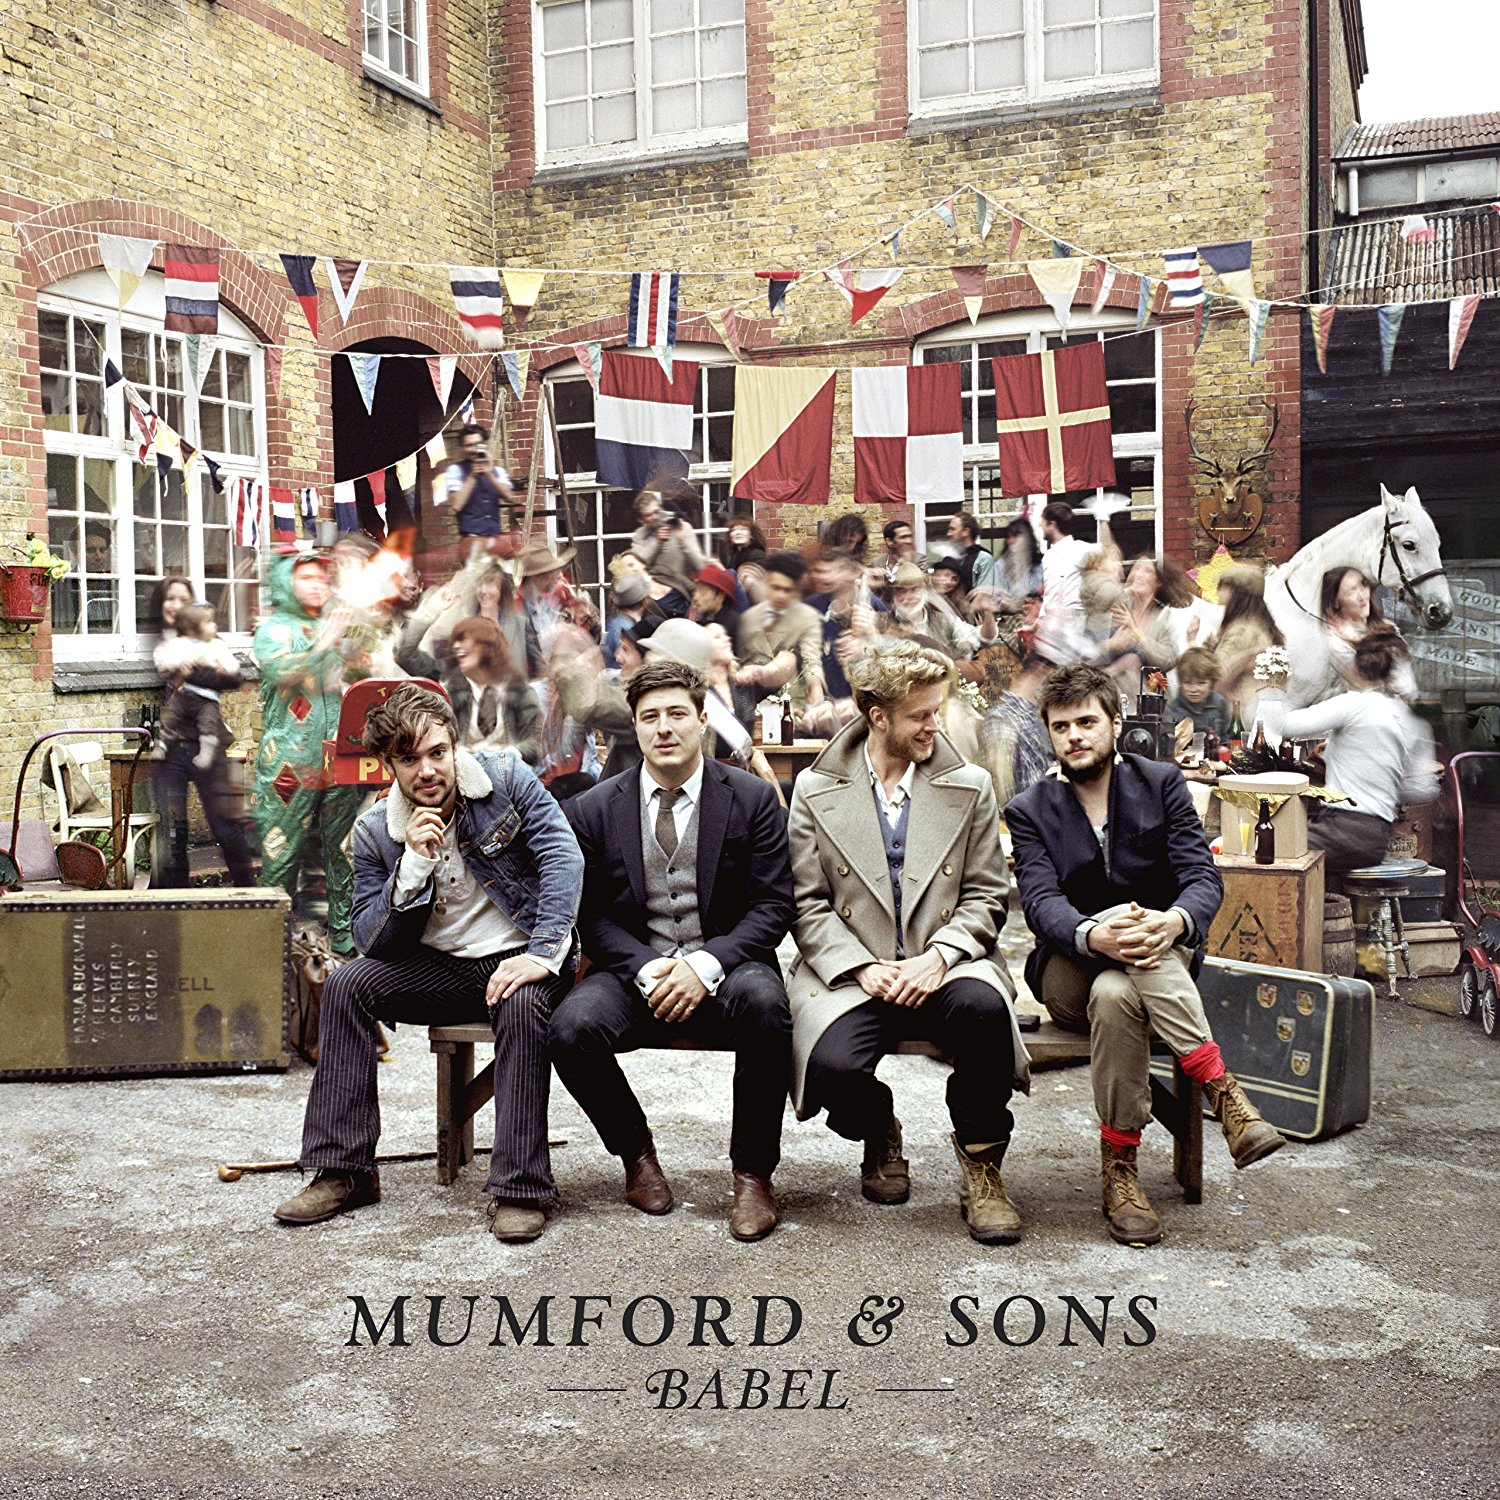 Mumford & Sons, Babel | Album Review